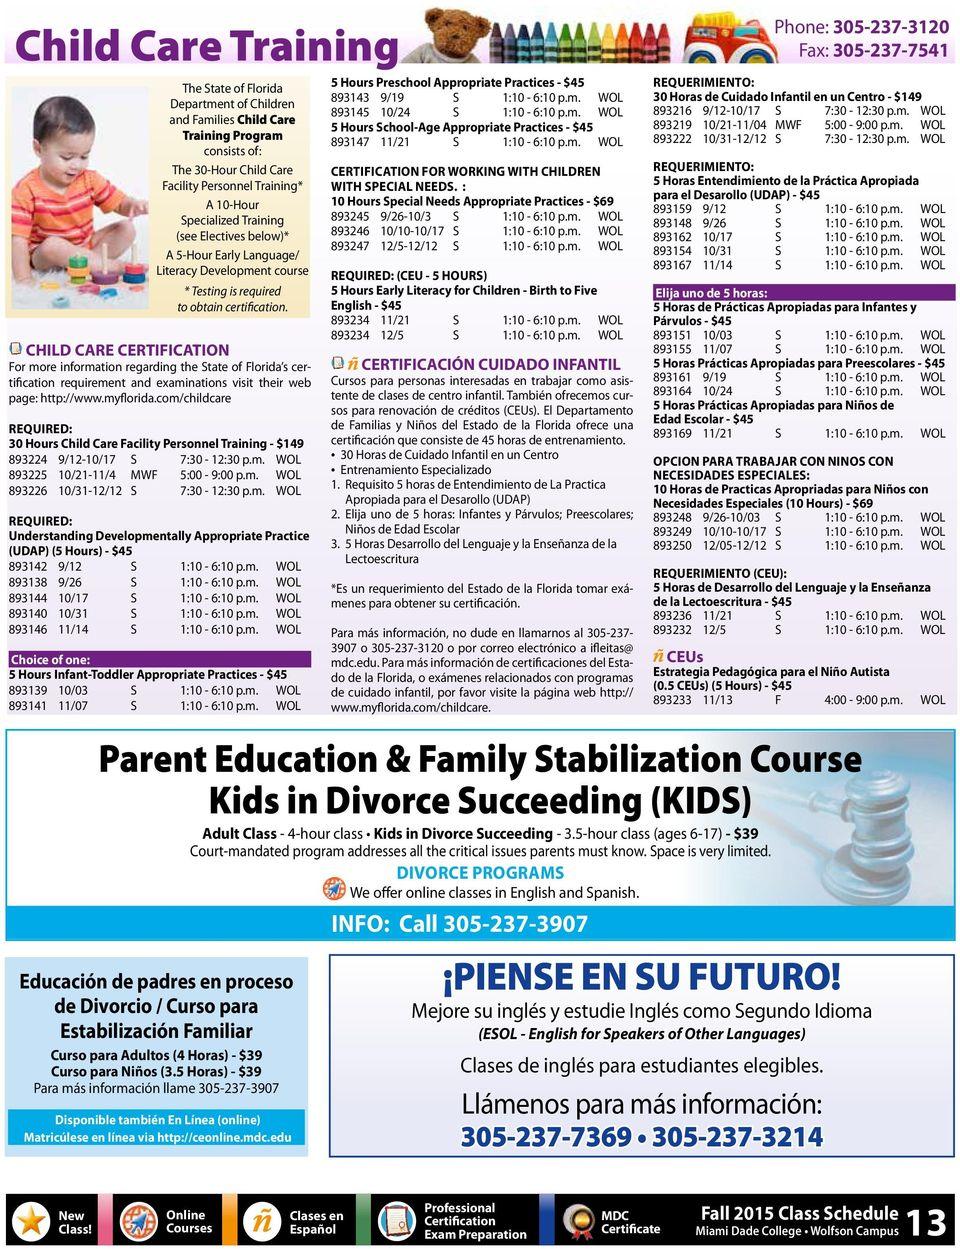 CHILD CARE CERTIFICATION For more information regarding the State of Florida s certification requirement and examinations visit their web page: http://www.myflorida.